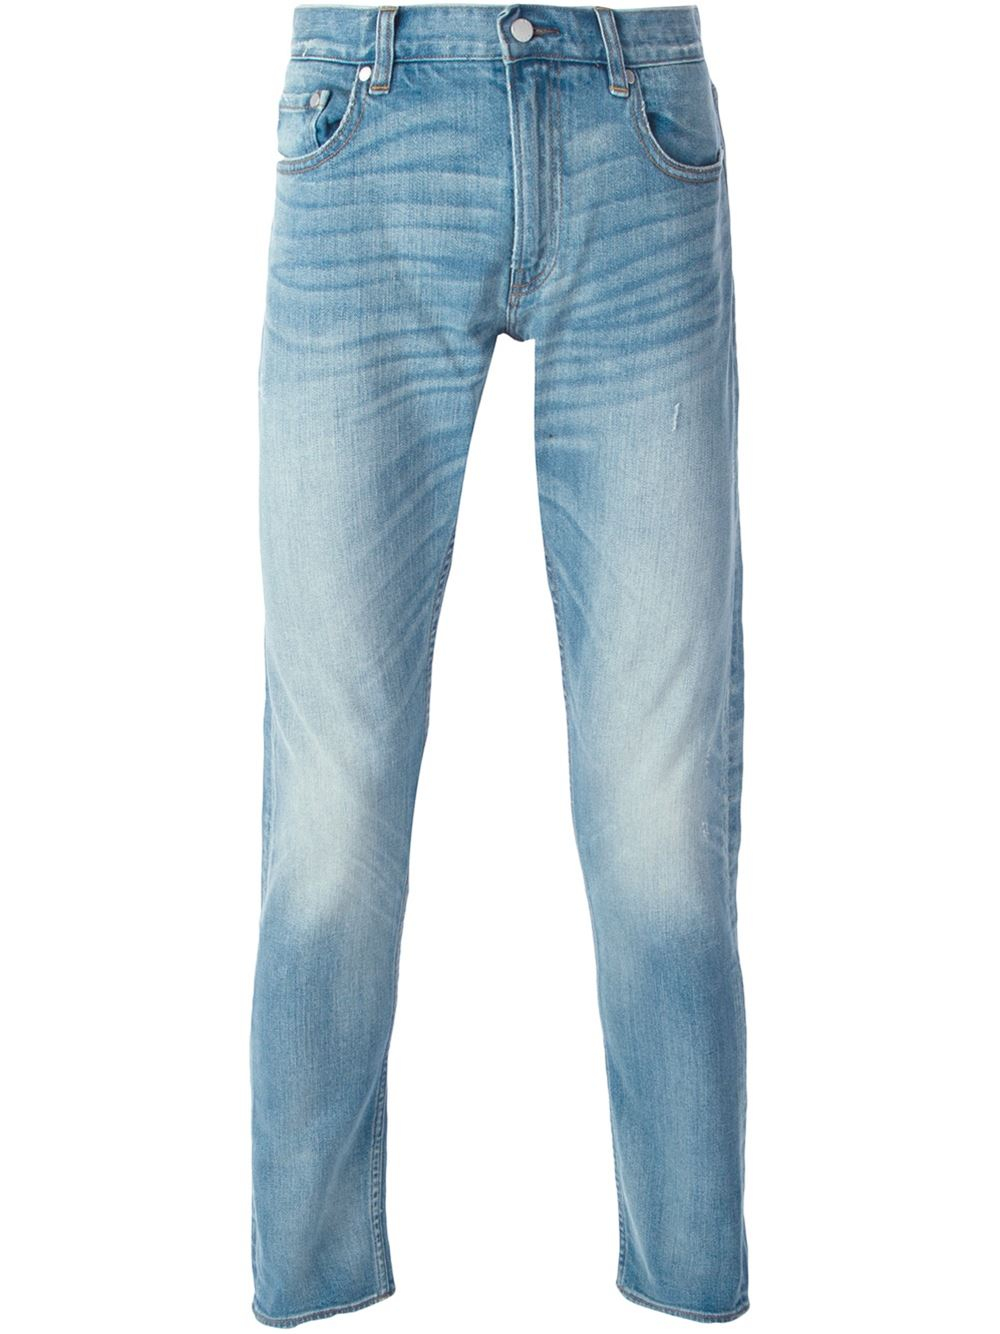 michael kors skinny jeans in blue for men save 10 lyst. Black Bedroom Furniture Sets. Home Design Ideas